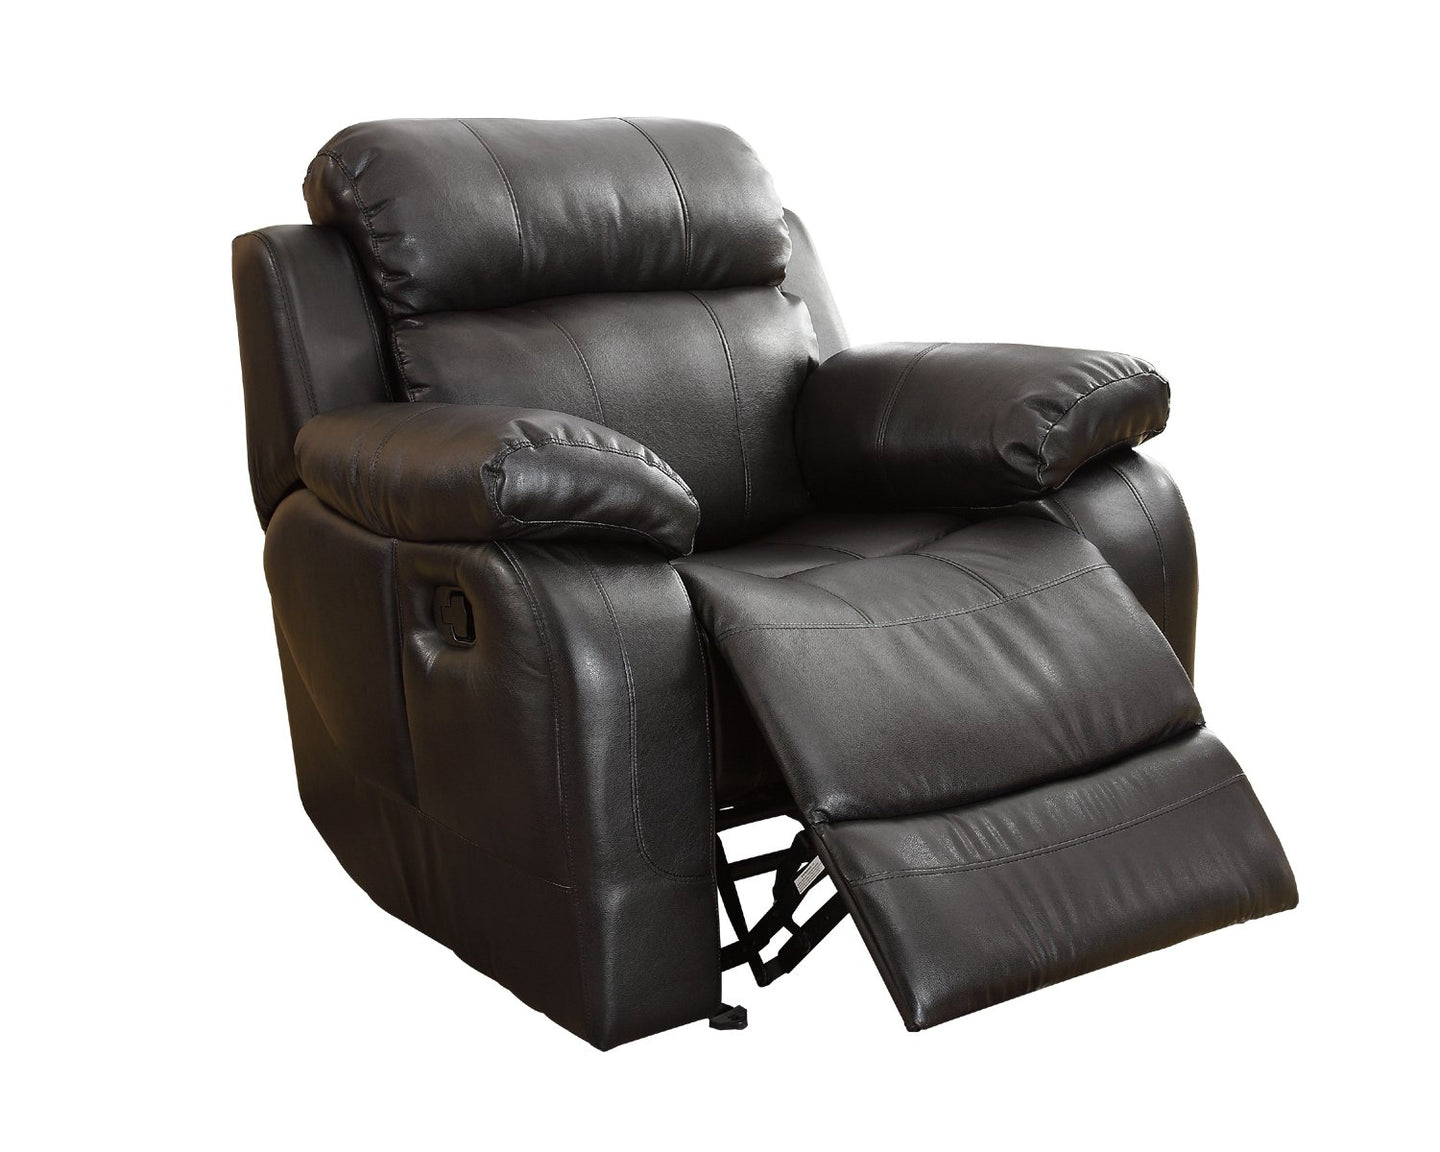 Homelegance 9724BLK-1 Tuft Black Bonded Leather Glider Reclining Chair